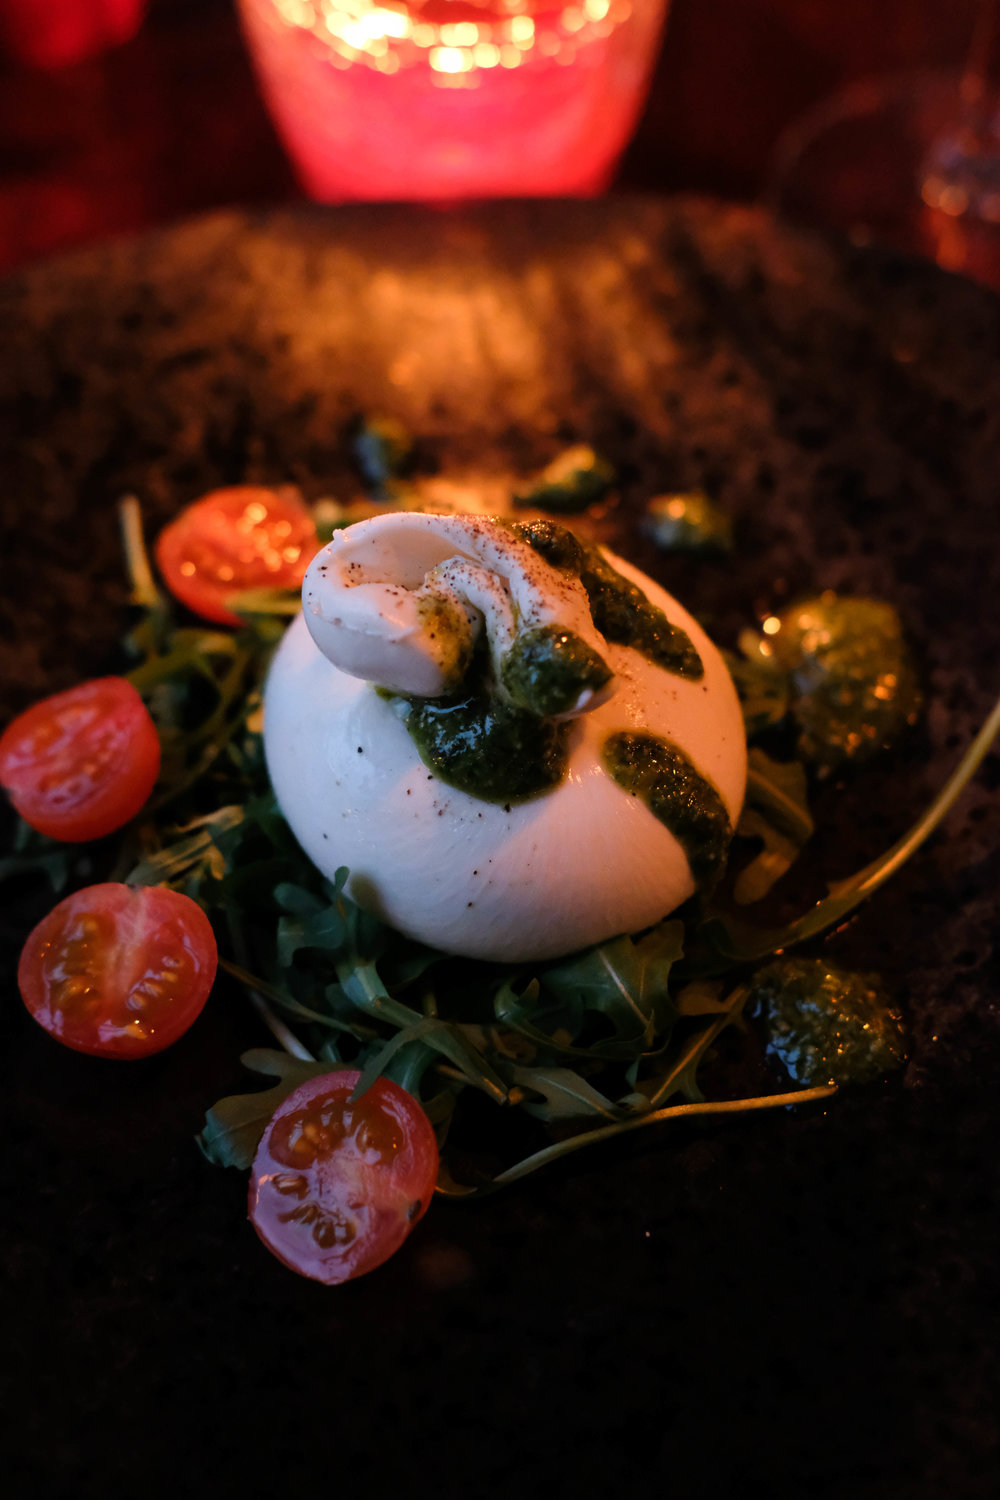 "<p style=""font-family:brandon-grotesque;font-weight:500; font-size:11px; text-center:left; color:light grey;letter-spacing: 1px"">FEBRUARY 16, 2018 • BURRATA • 📍Bath, UK 🇬🇧</p>"